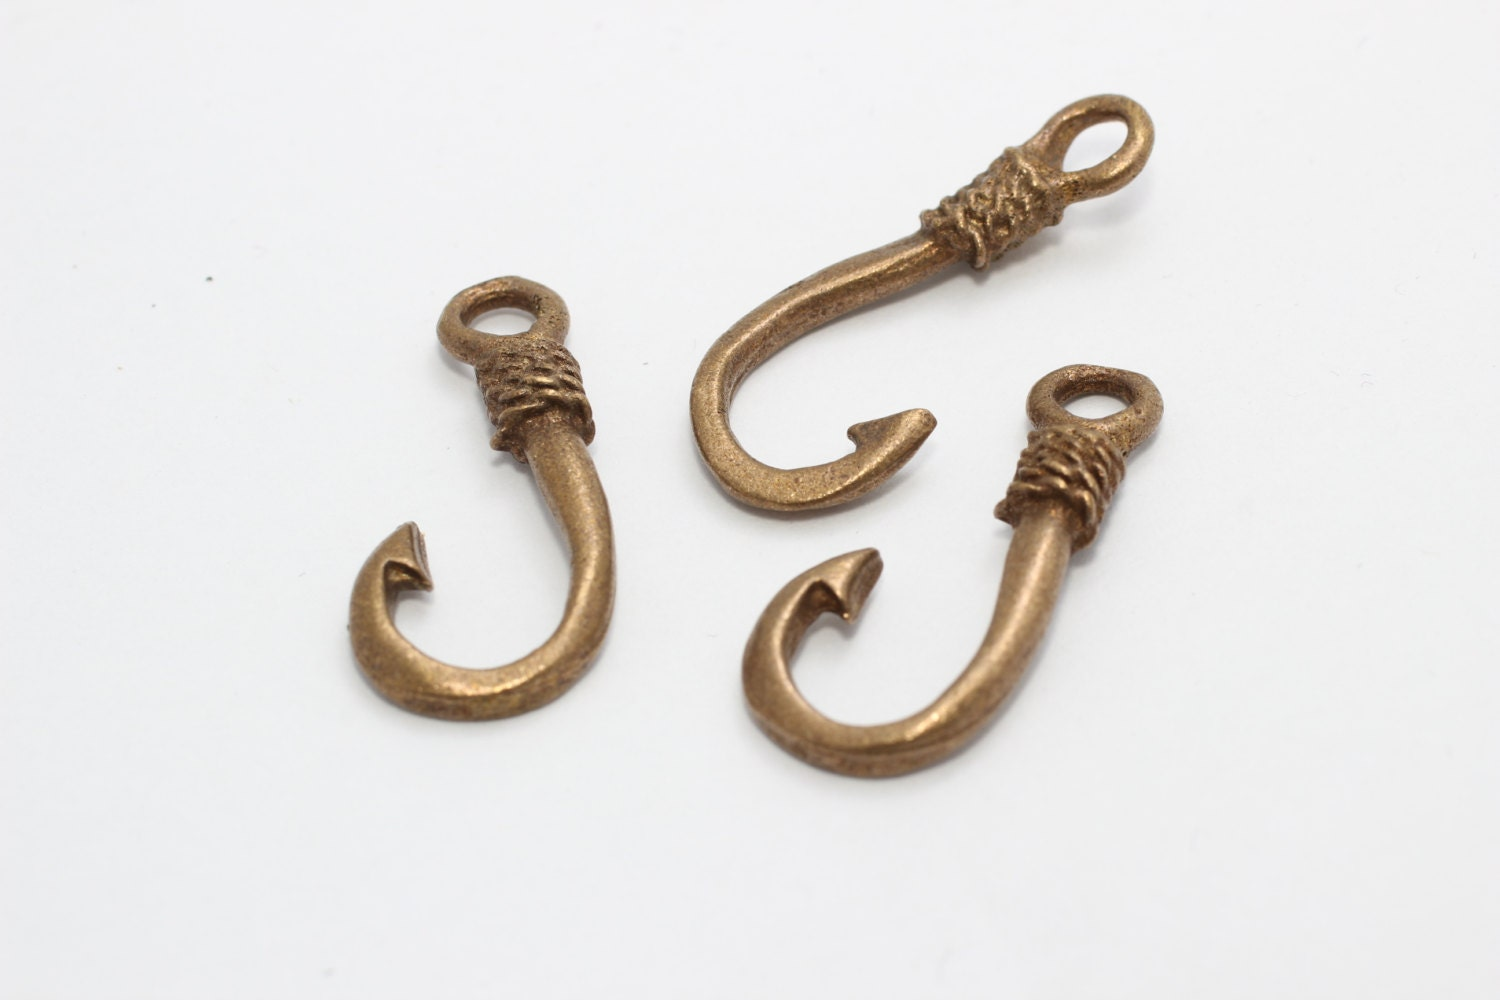 4 pcs antique bronze fish hook charms 125x28mm bracelet for Fish hook charm